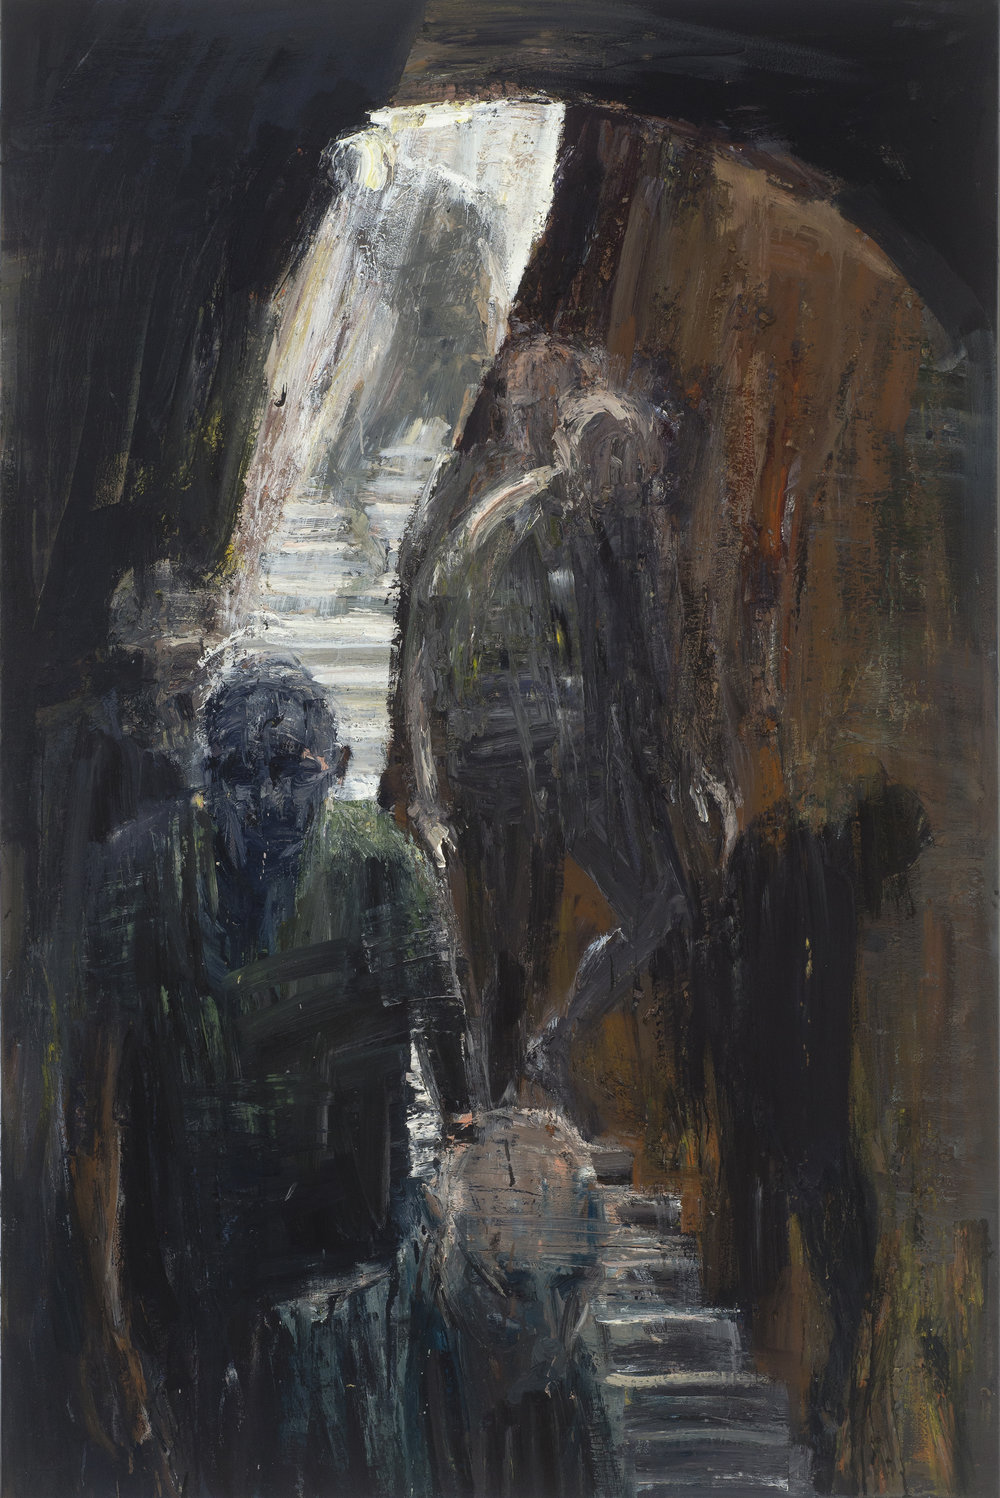 Figures going down in cave 進洞穴的人   Euan Macleod , 2016  Oil on polyester, 167 x 111 cm, HKD 157,600